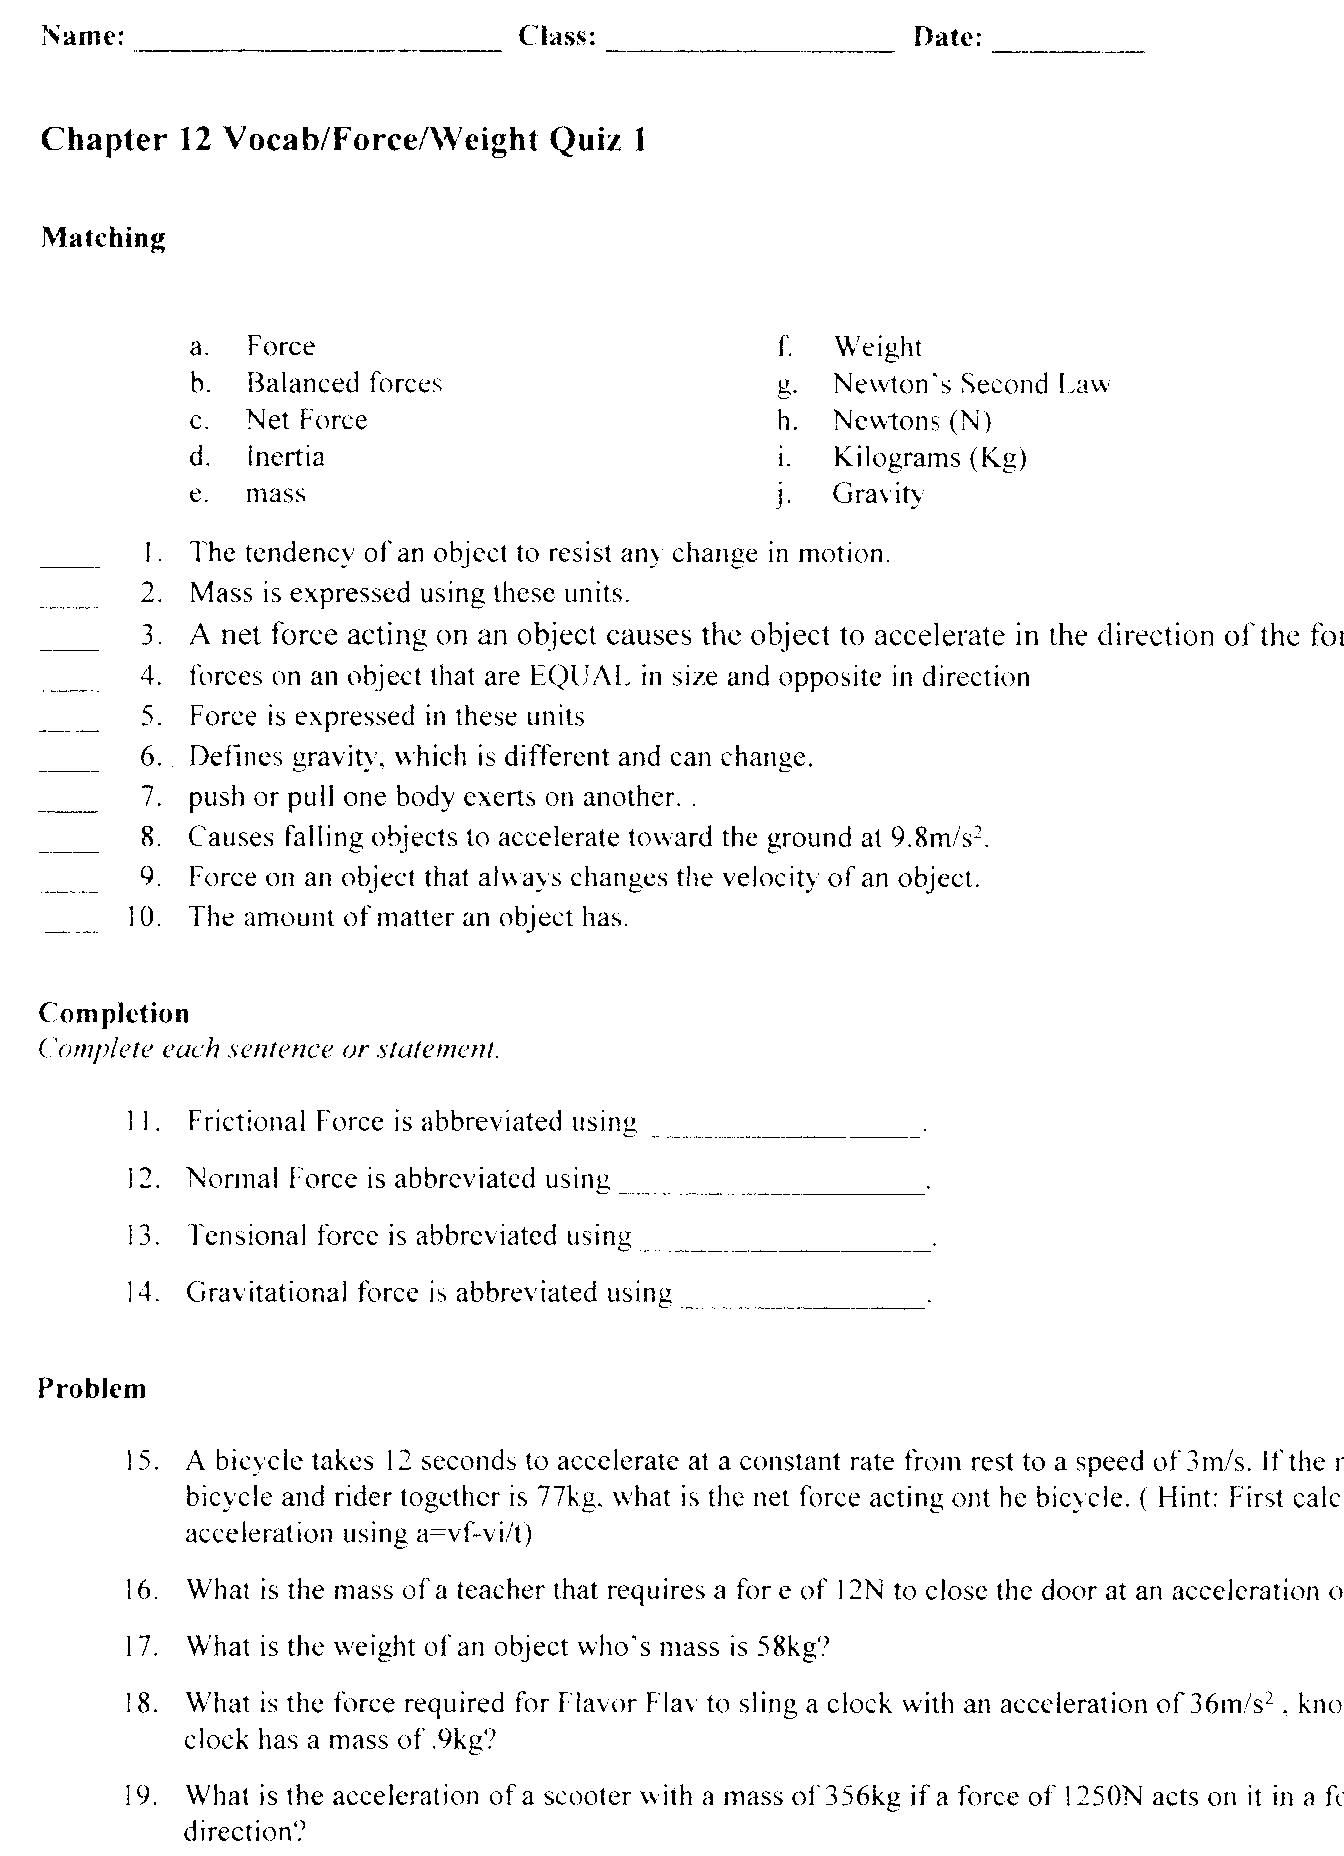 worksheet Law Of Conservation Of Mass Problems Worksheet law of conservation mass worksheet free worksheets library ch pter 6 periodic t ble w ksheet nswers ksheets